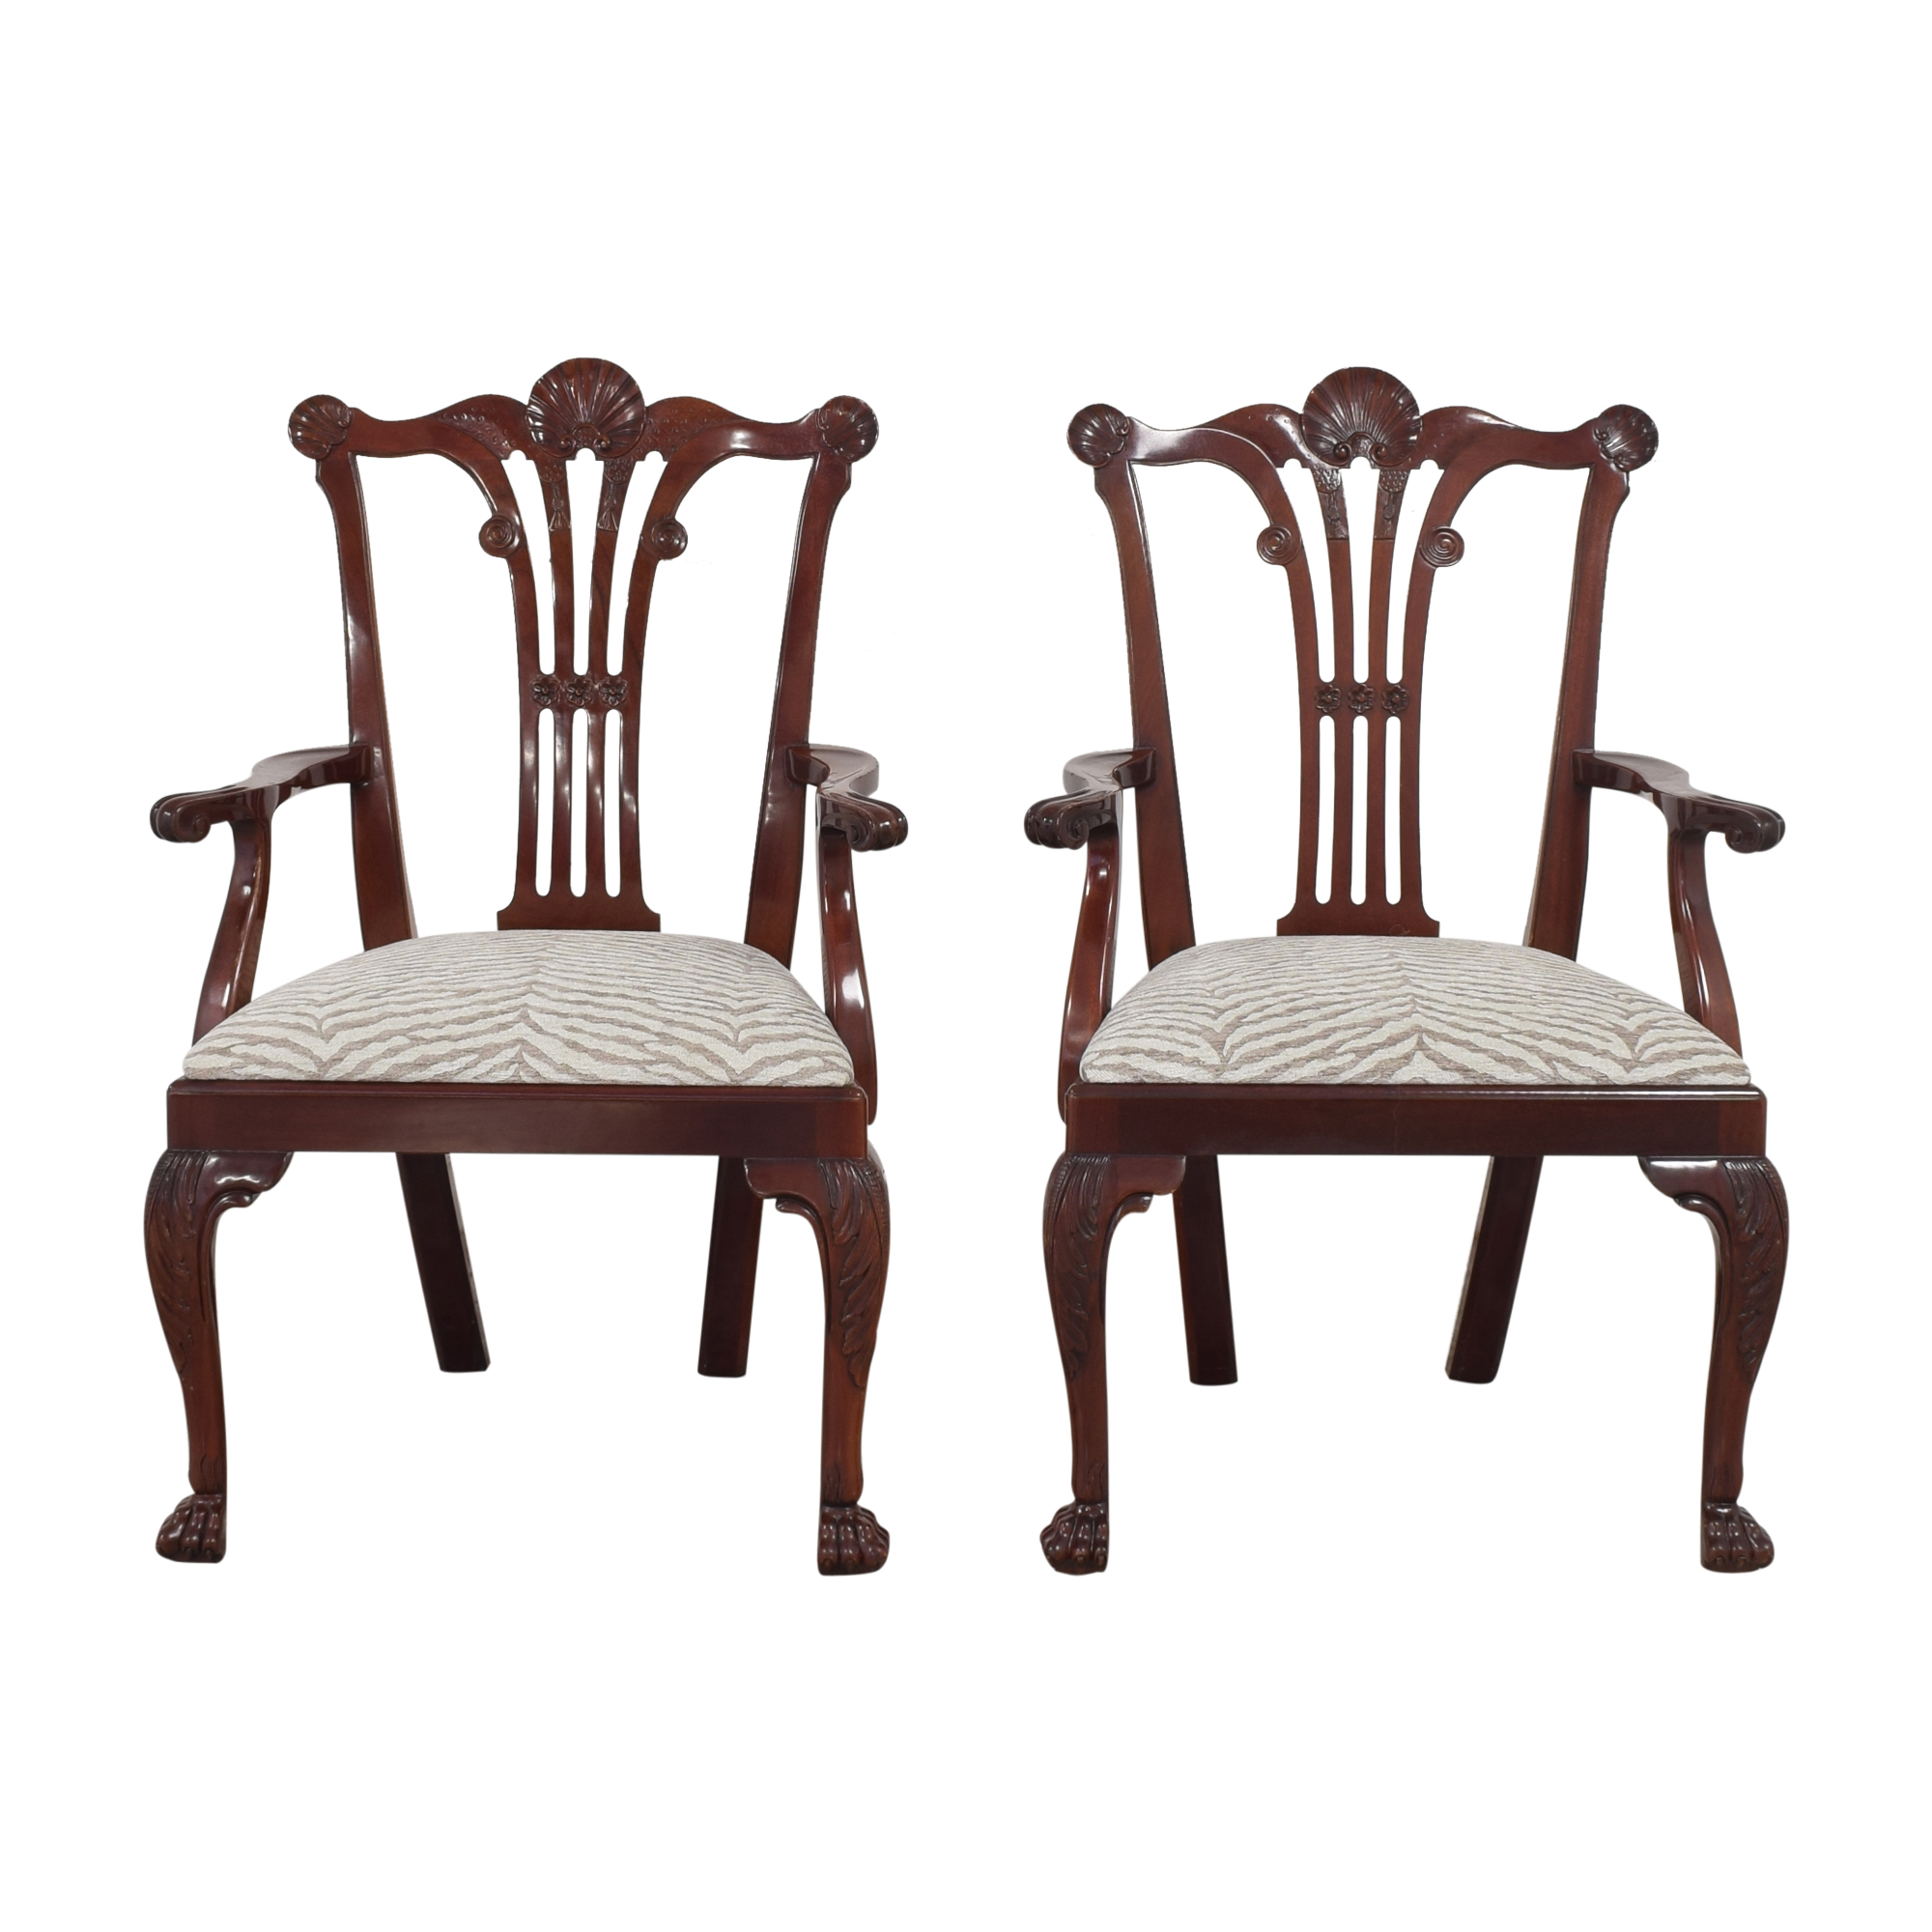 Kindel Kindel Chippendale-Style Dining Arm Chairs nj